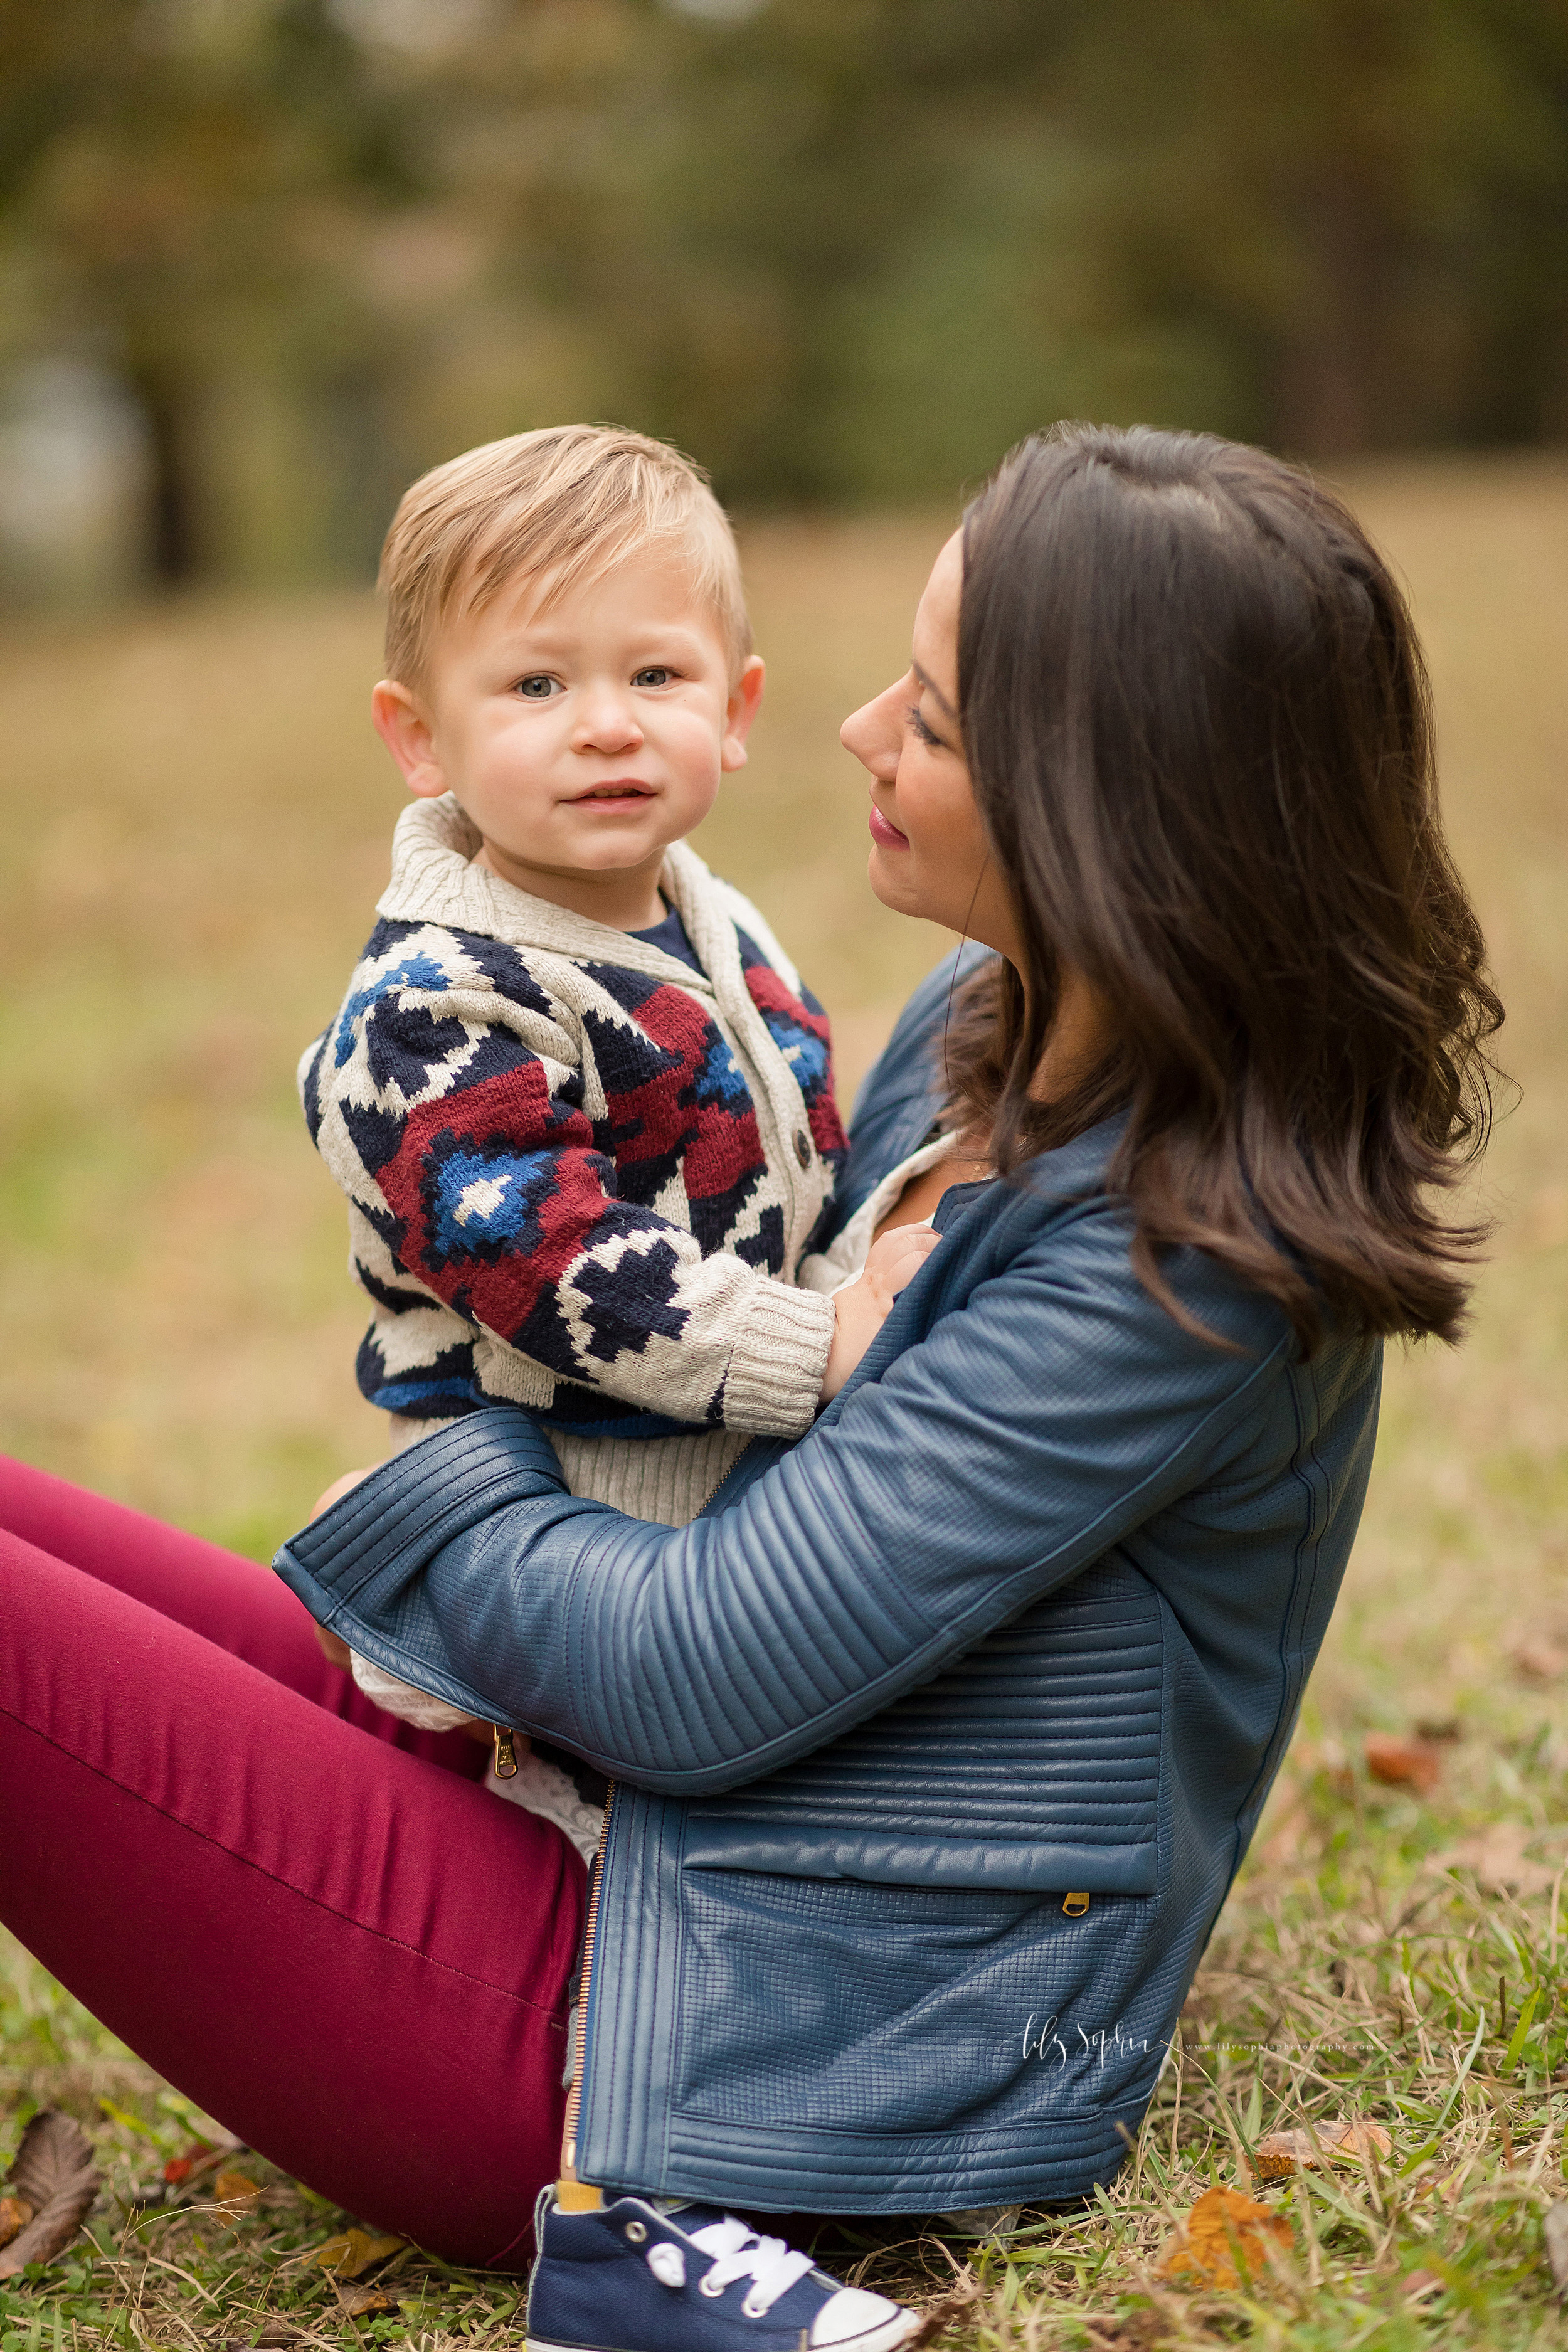 Photo of mom and her son in a park in Atlanta taken by Lily Sophia Photography in autumn. The blond haired son is straddling his brunette mom who is sitting on the grass with her legs bent.